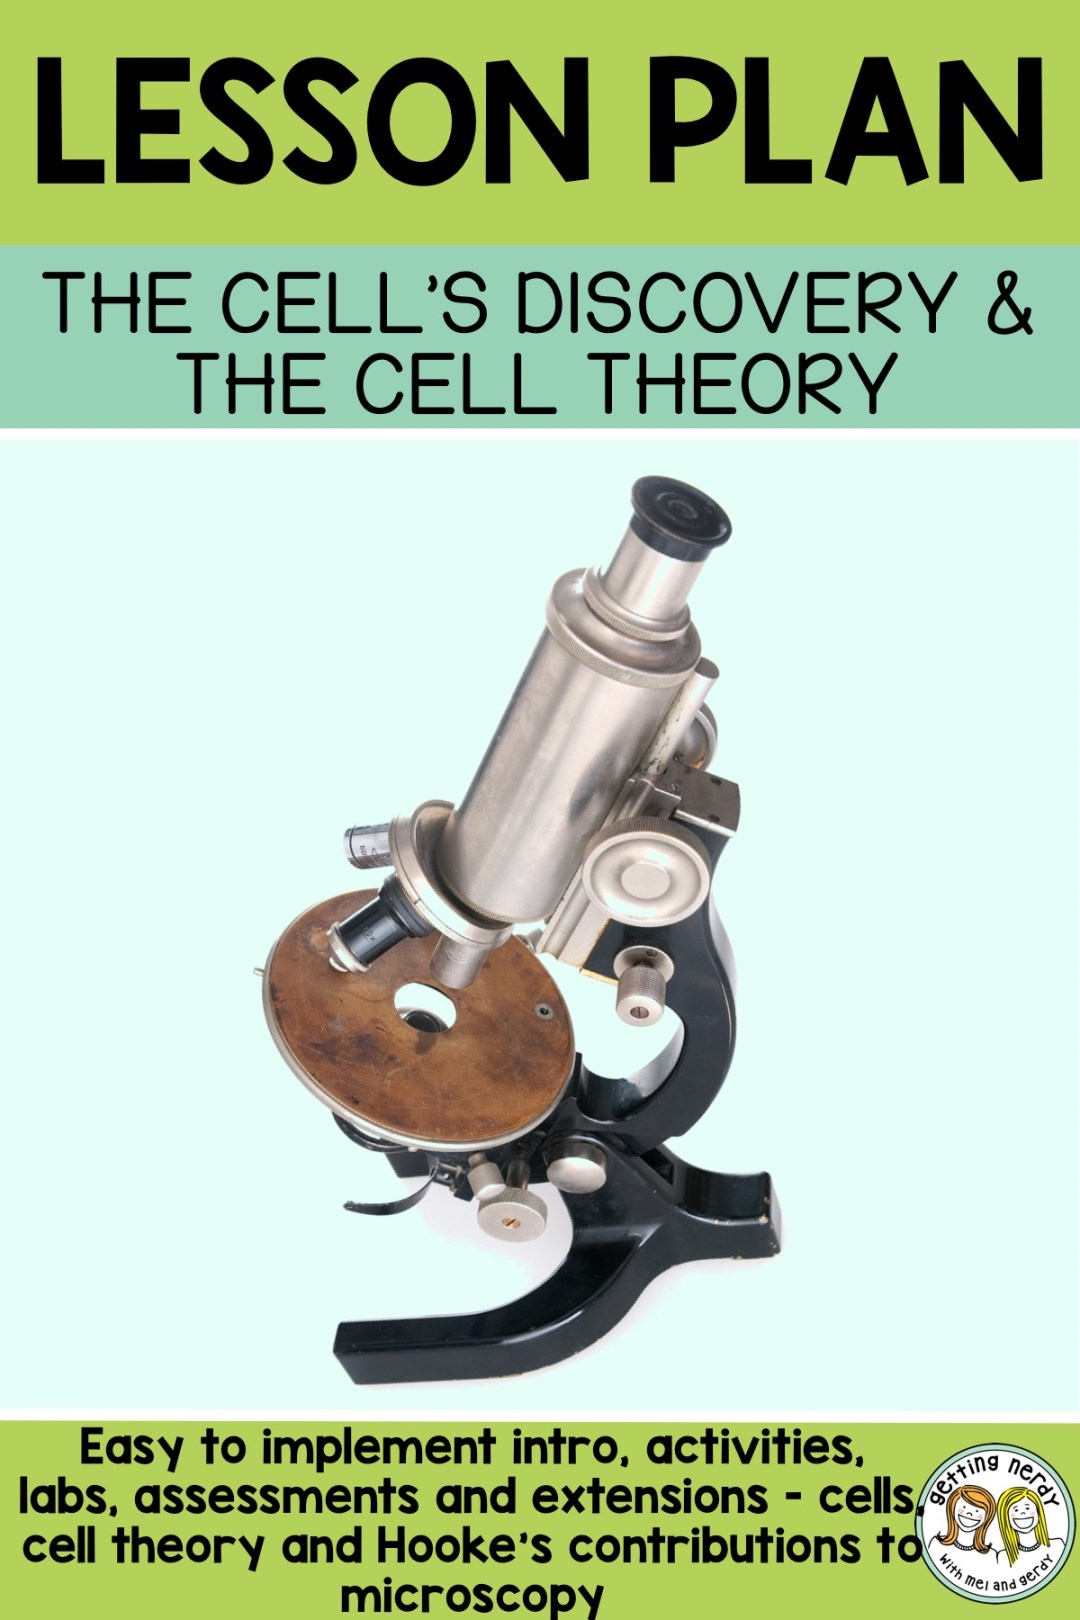 This is a great lesson plan to introduce cells, the cell theory and Hooke's contributions to the scientific micro-world. #gettingnerdyscience #microscope #lifesciencelessonplan